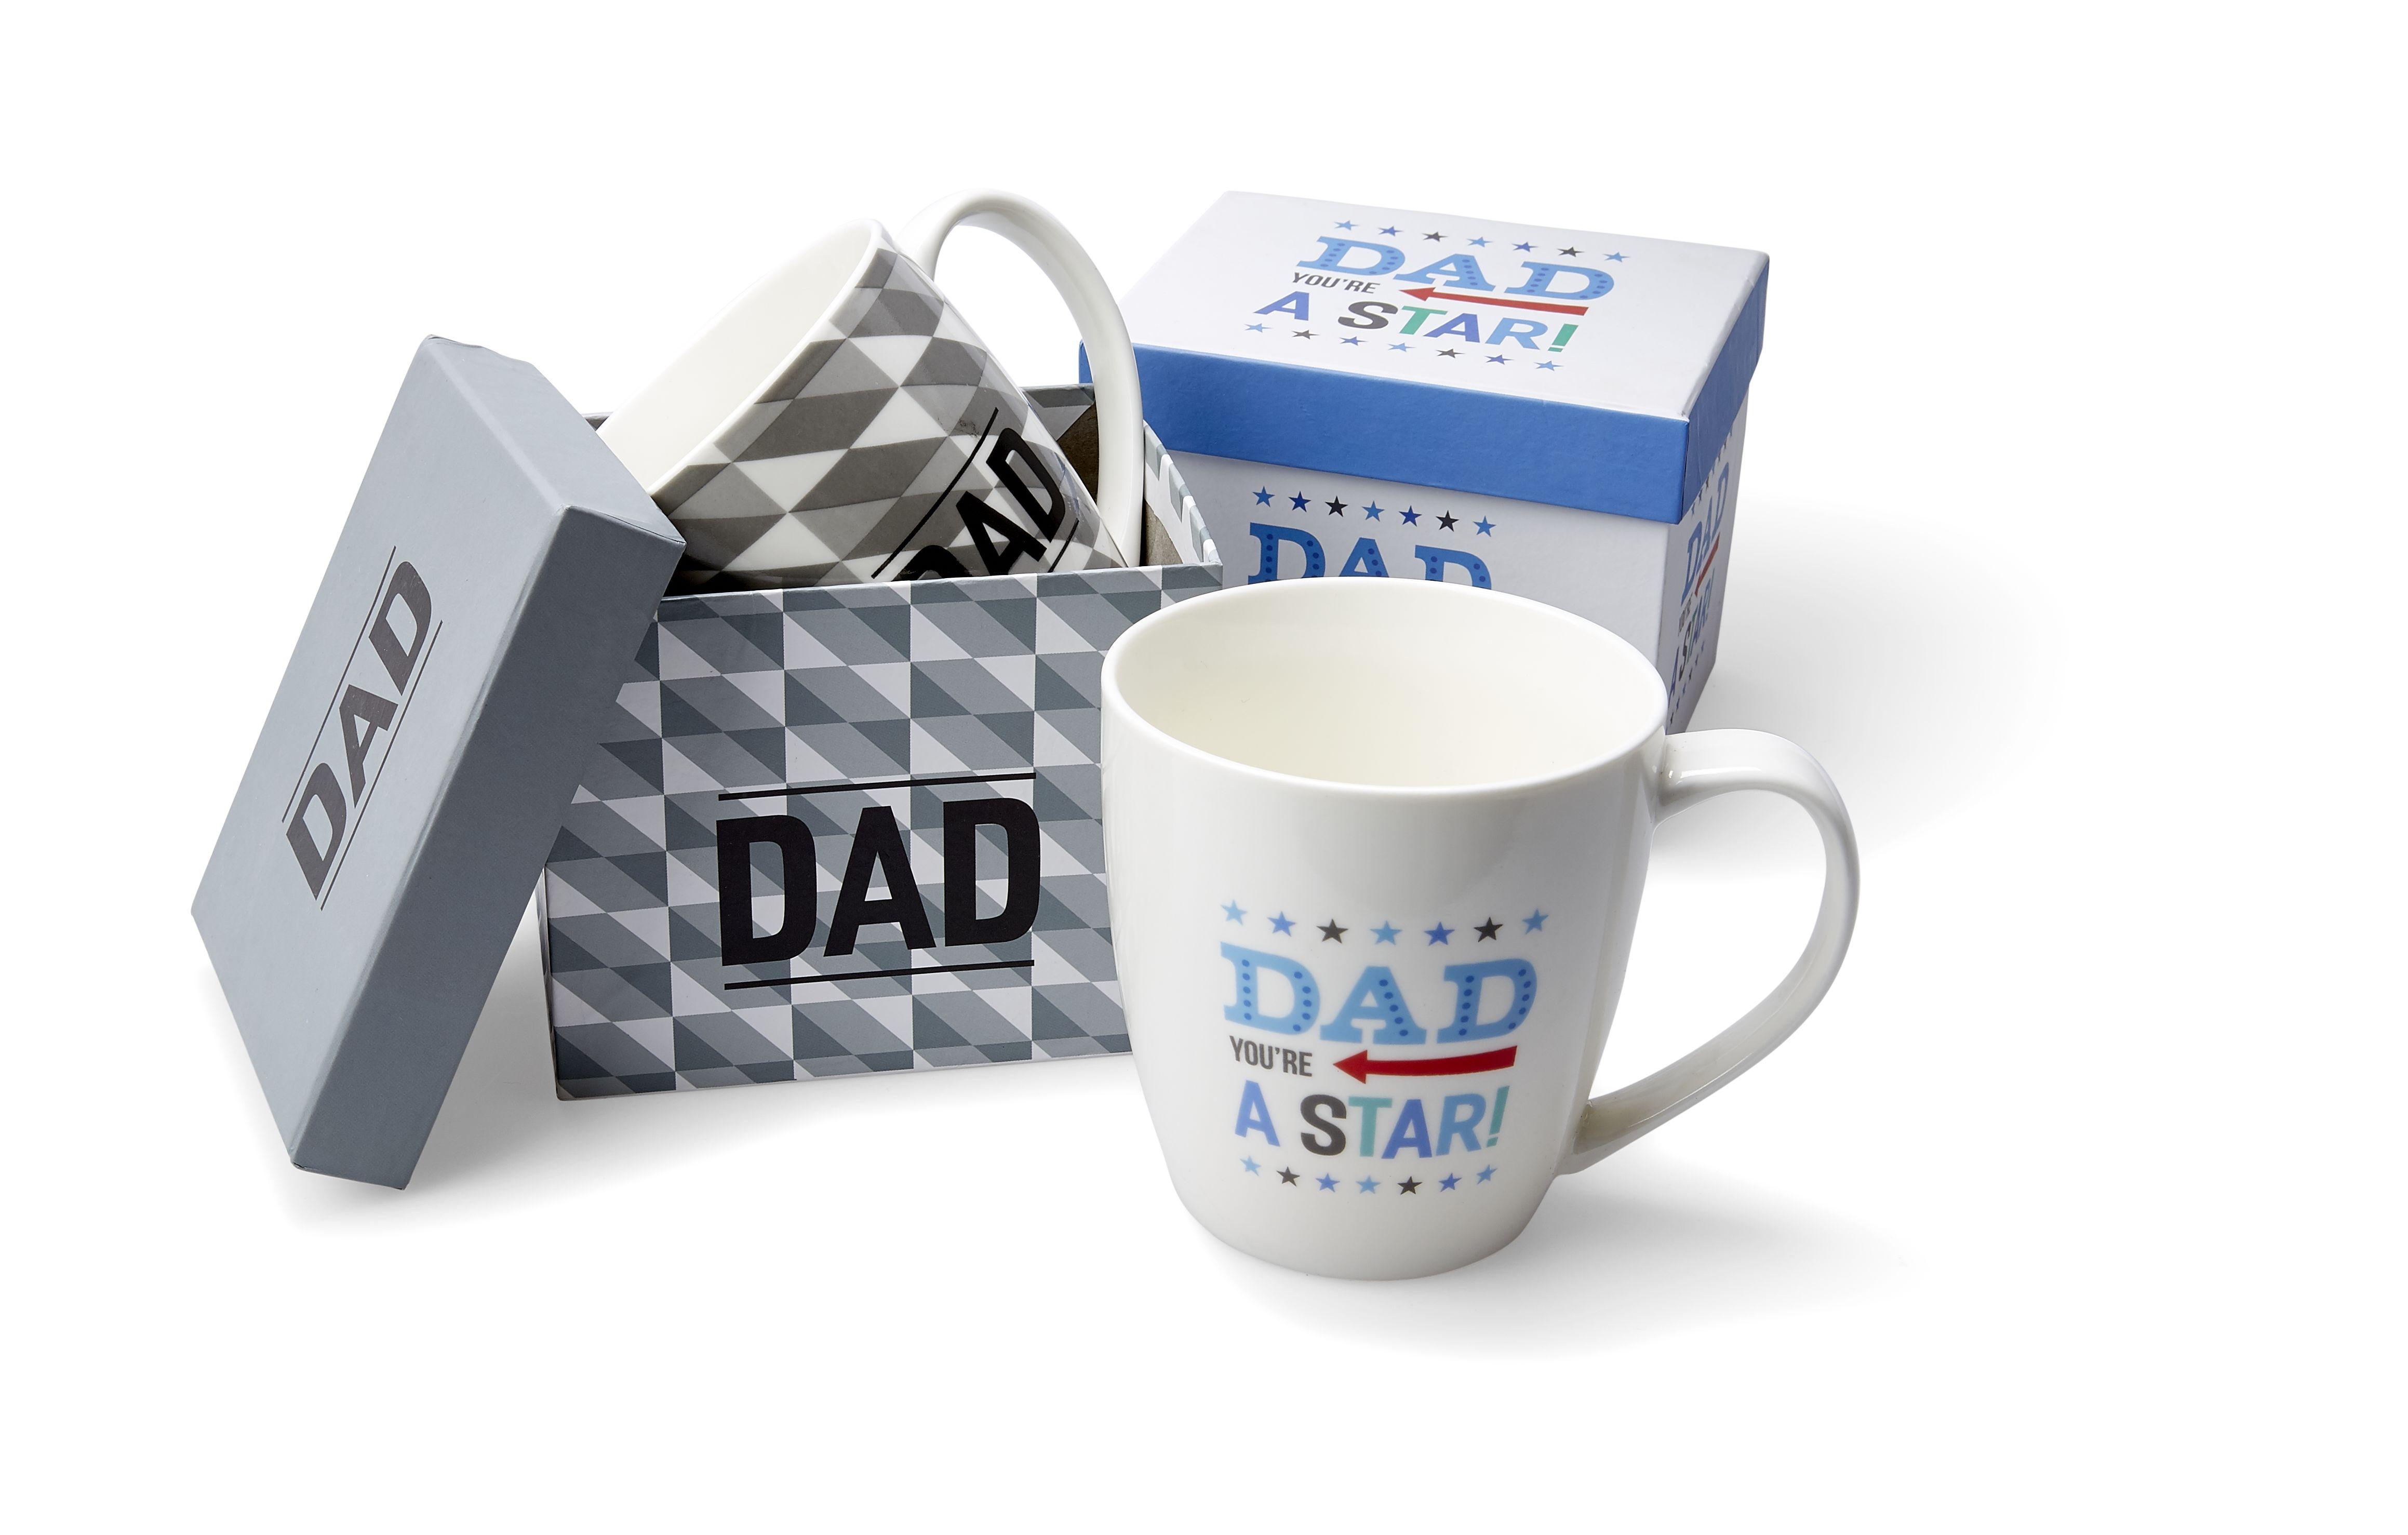 Kmart Dad you're a star mug or Dad mug, RRP$4.00 ea